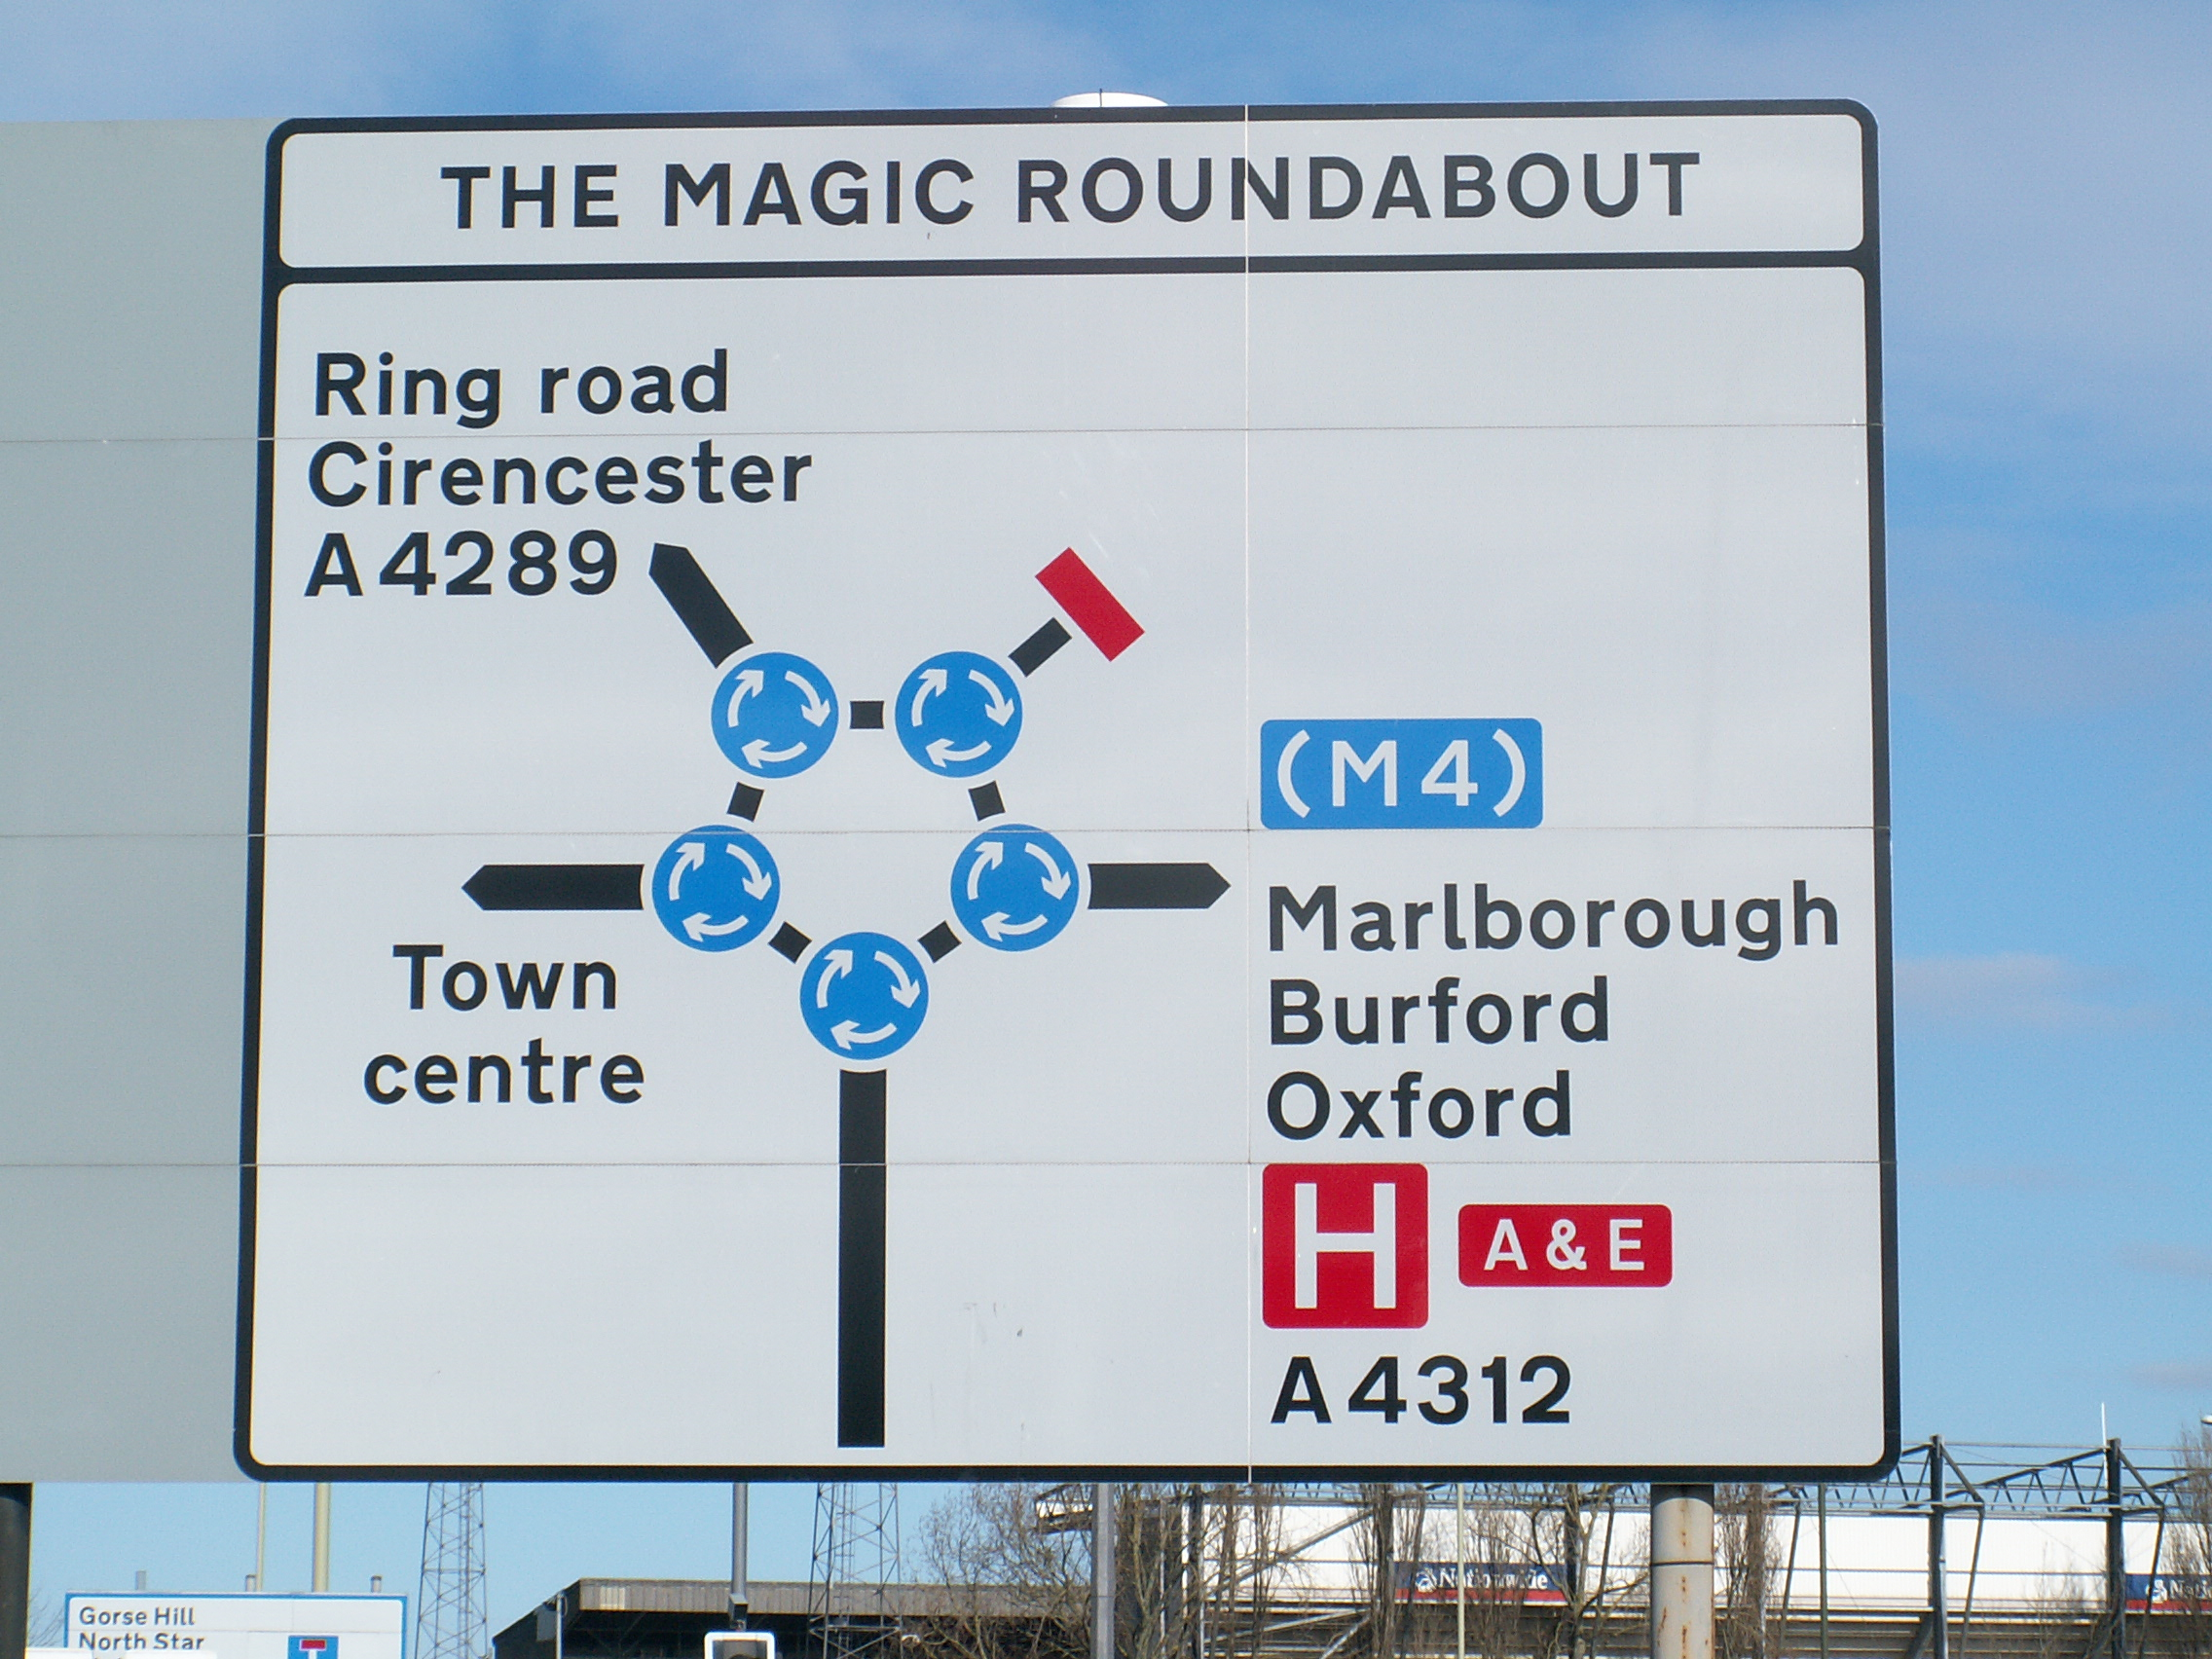 https://i2.wp.com/upload.wikimedia.org/wikipedia/commons/5/58/Magic_Roundabout_Schild_db.jpg